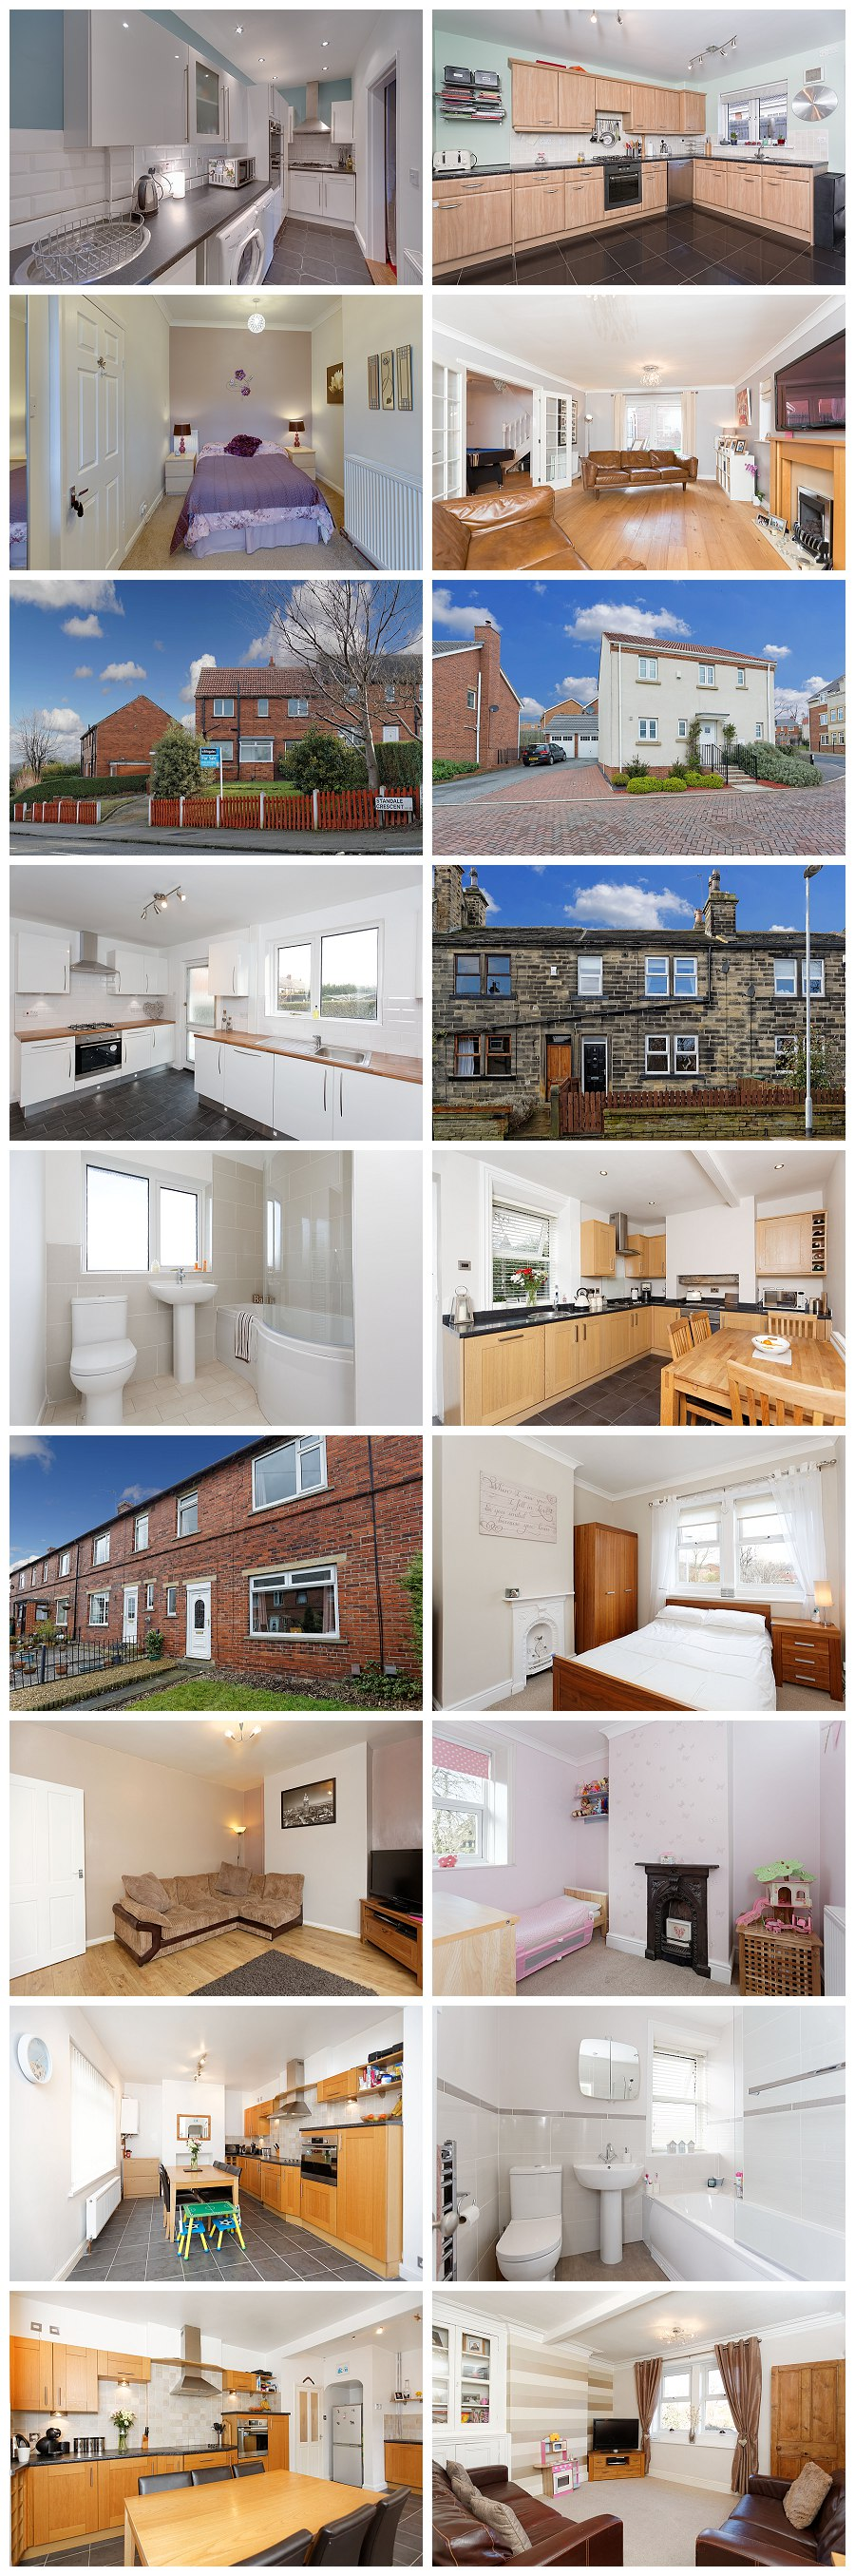 Estate Agency Photography Leeds, estate agent photos Leeds, turnkey